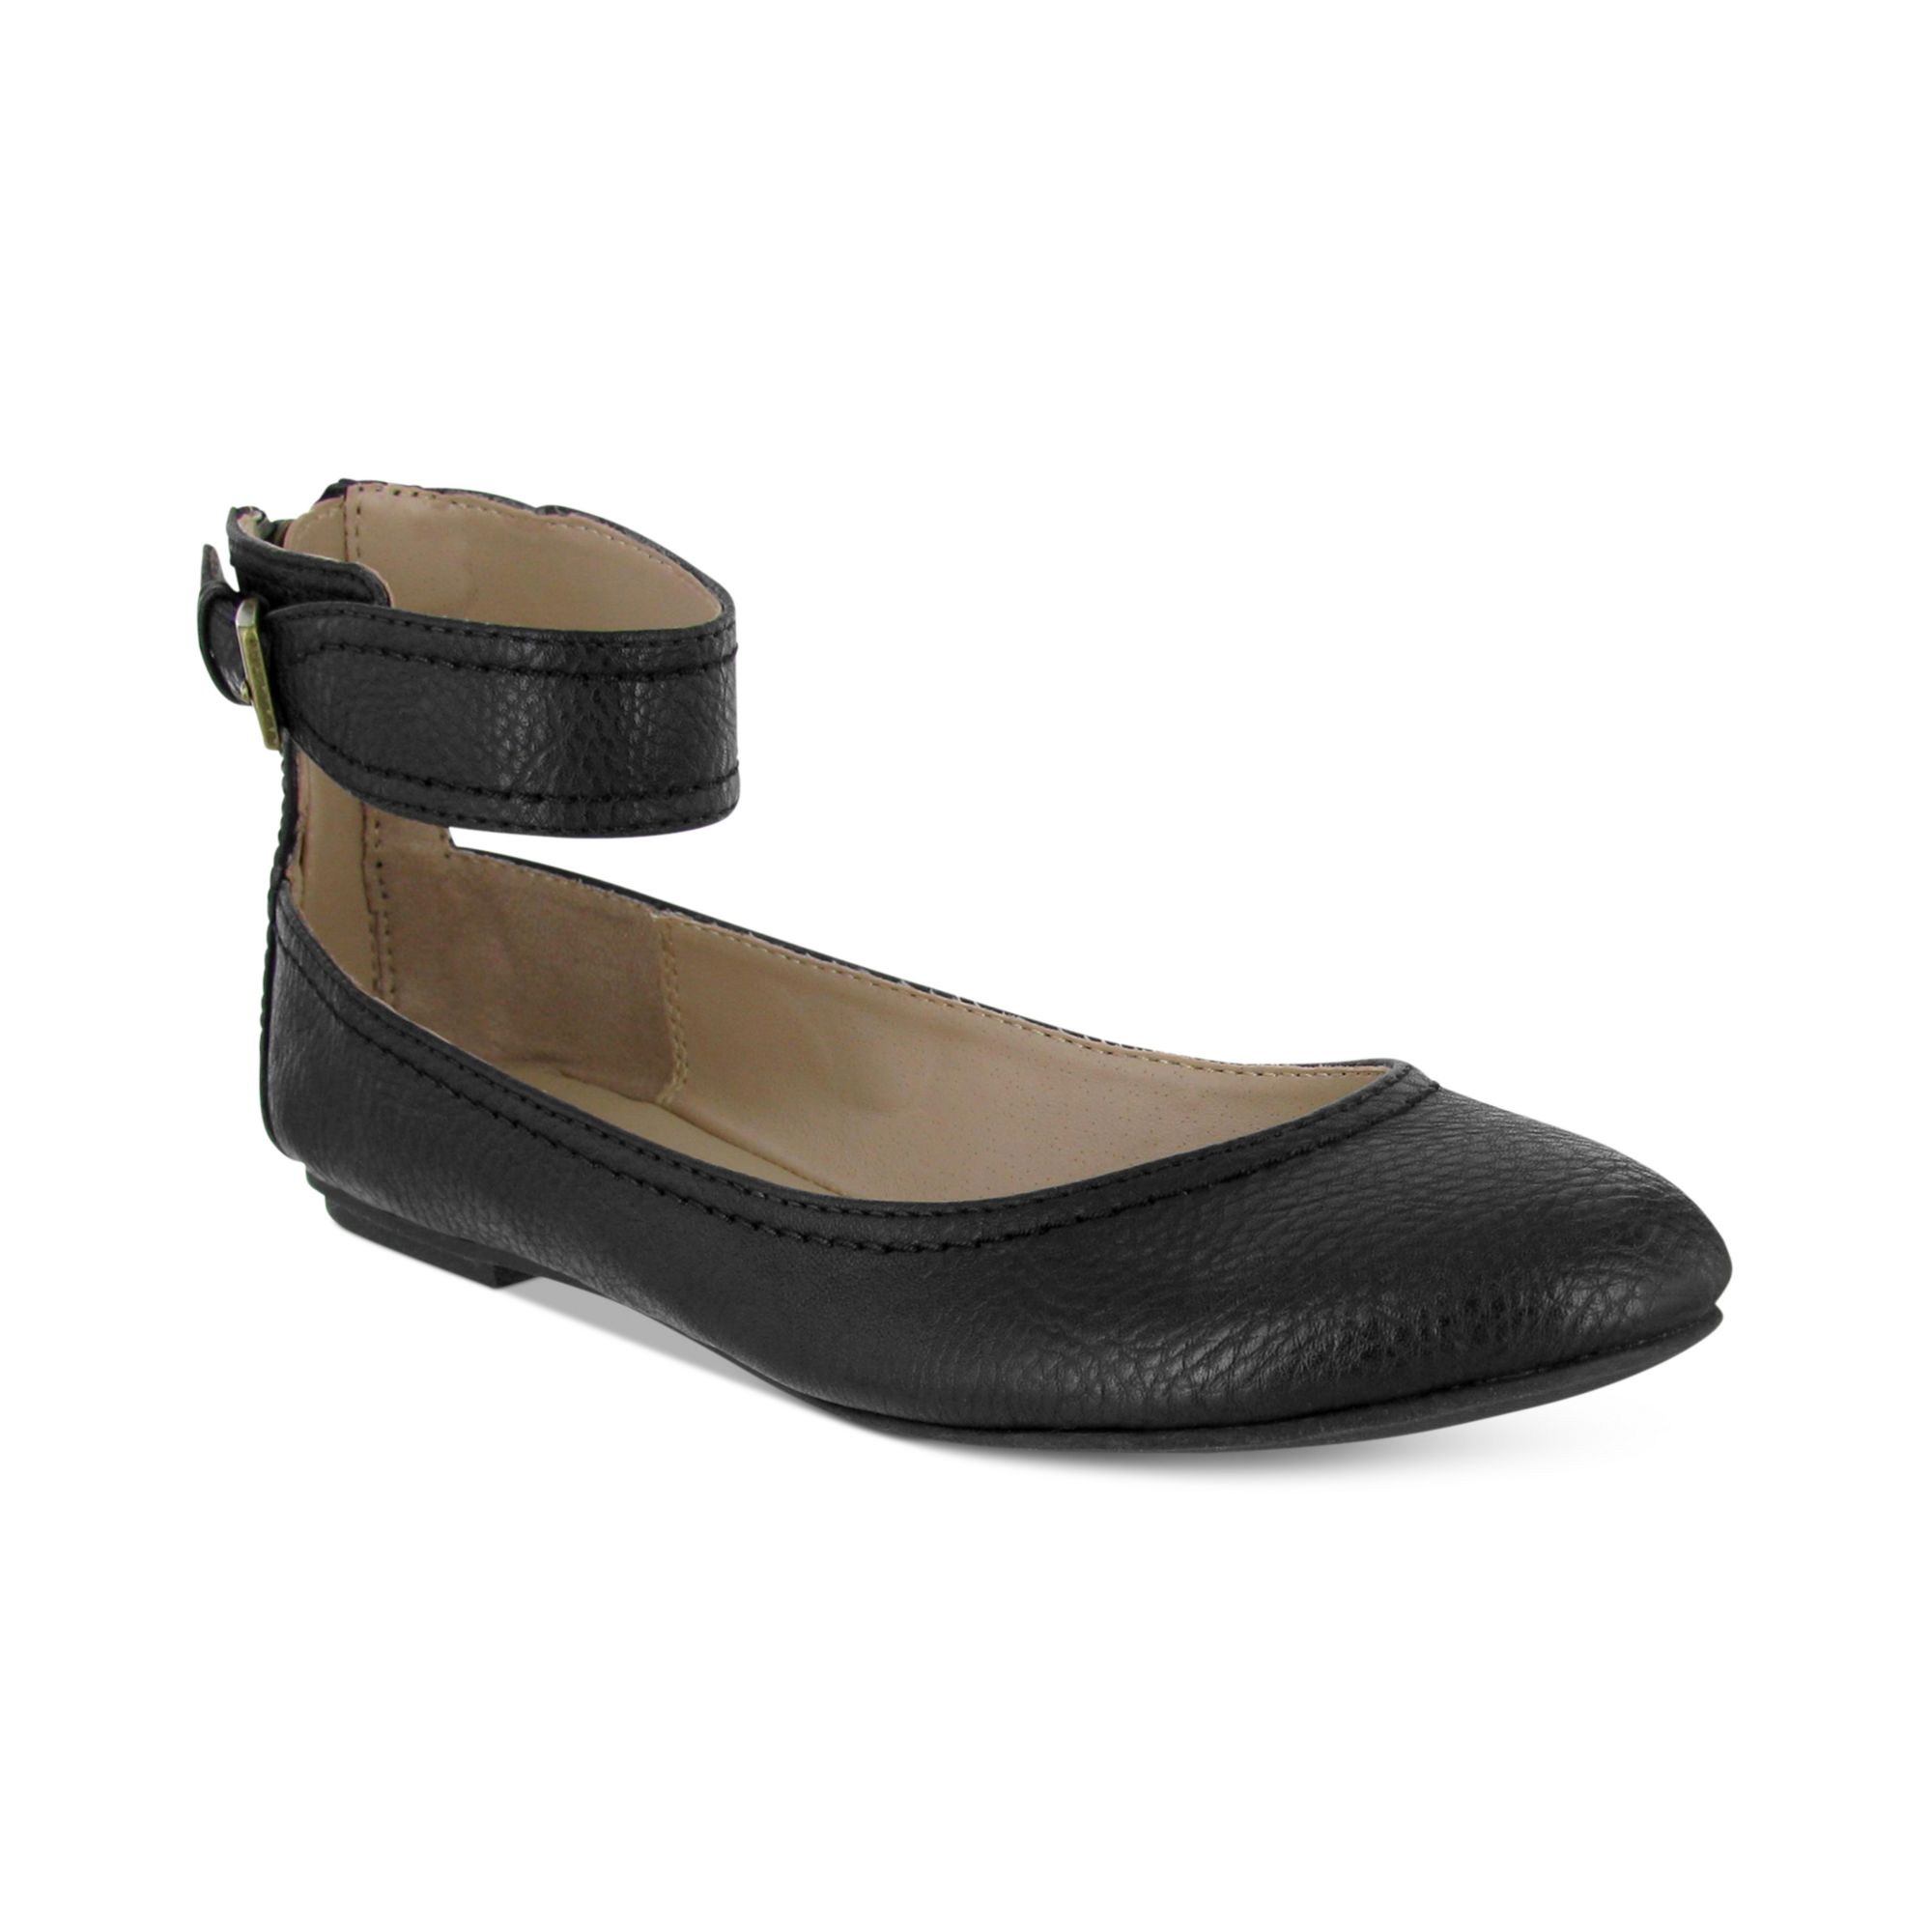 Find ankle strap ballet flats at ShopStyle. Shop the latest collection of ankle strap ballet flats from the most popular stores - all in one place.